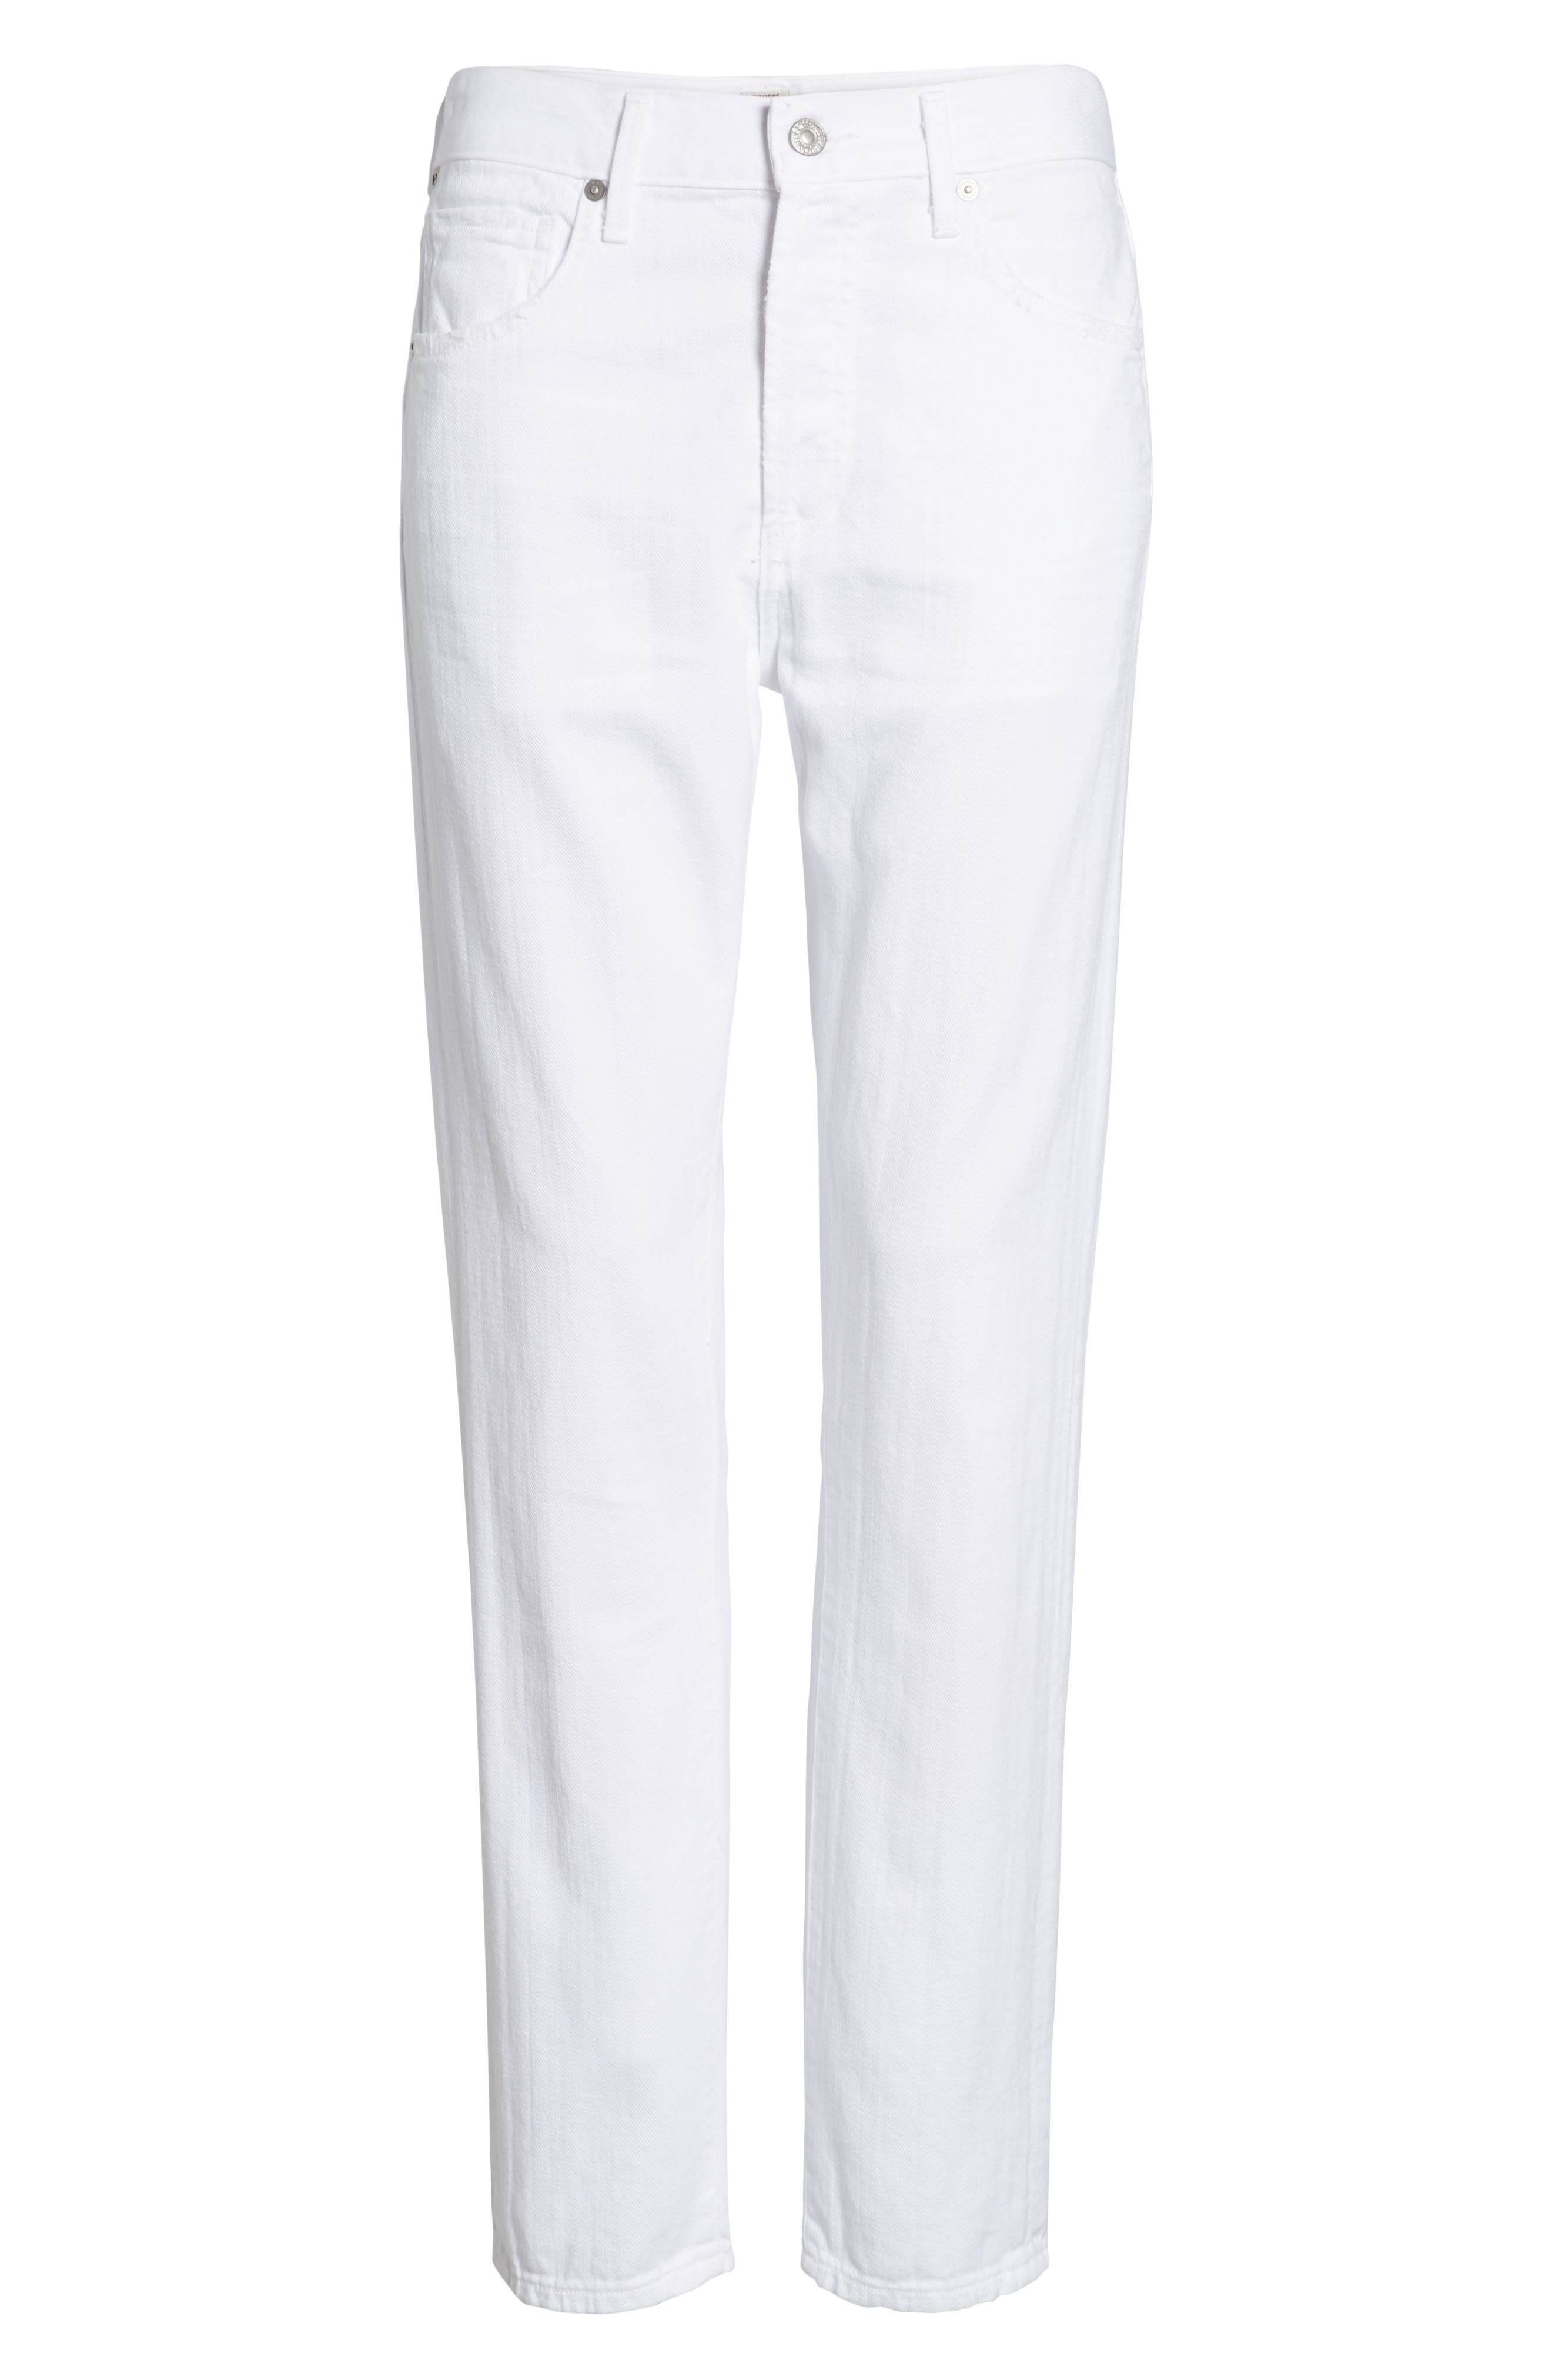 CITIZENS OF HUMANITY, Corey Slouchy Slim Jeans, Alternate thumbnail 7, color, DISTRESSED WHITE